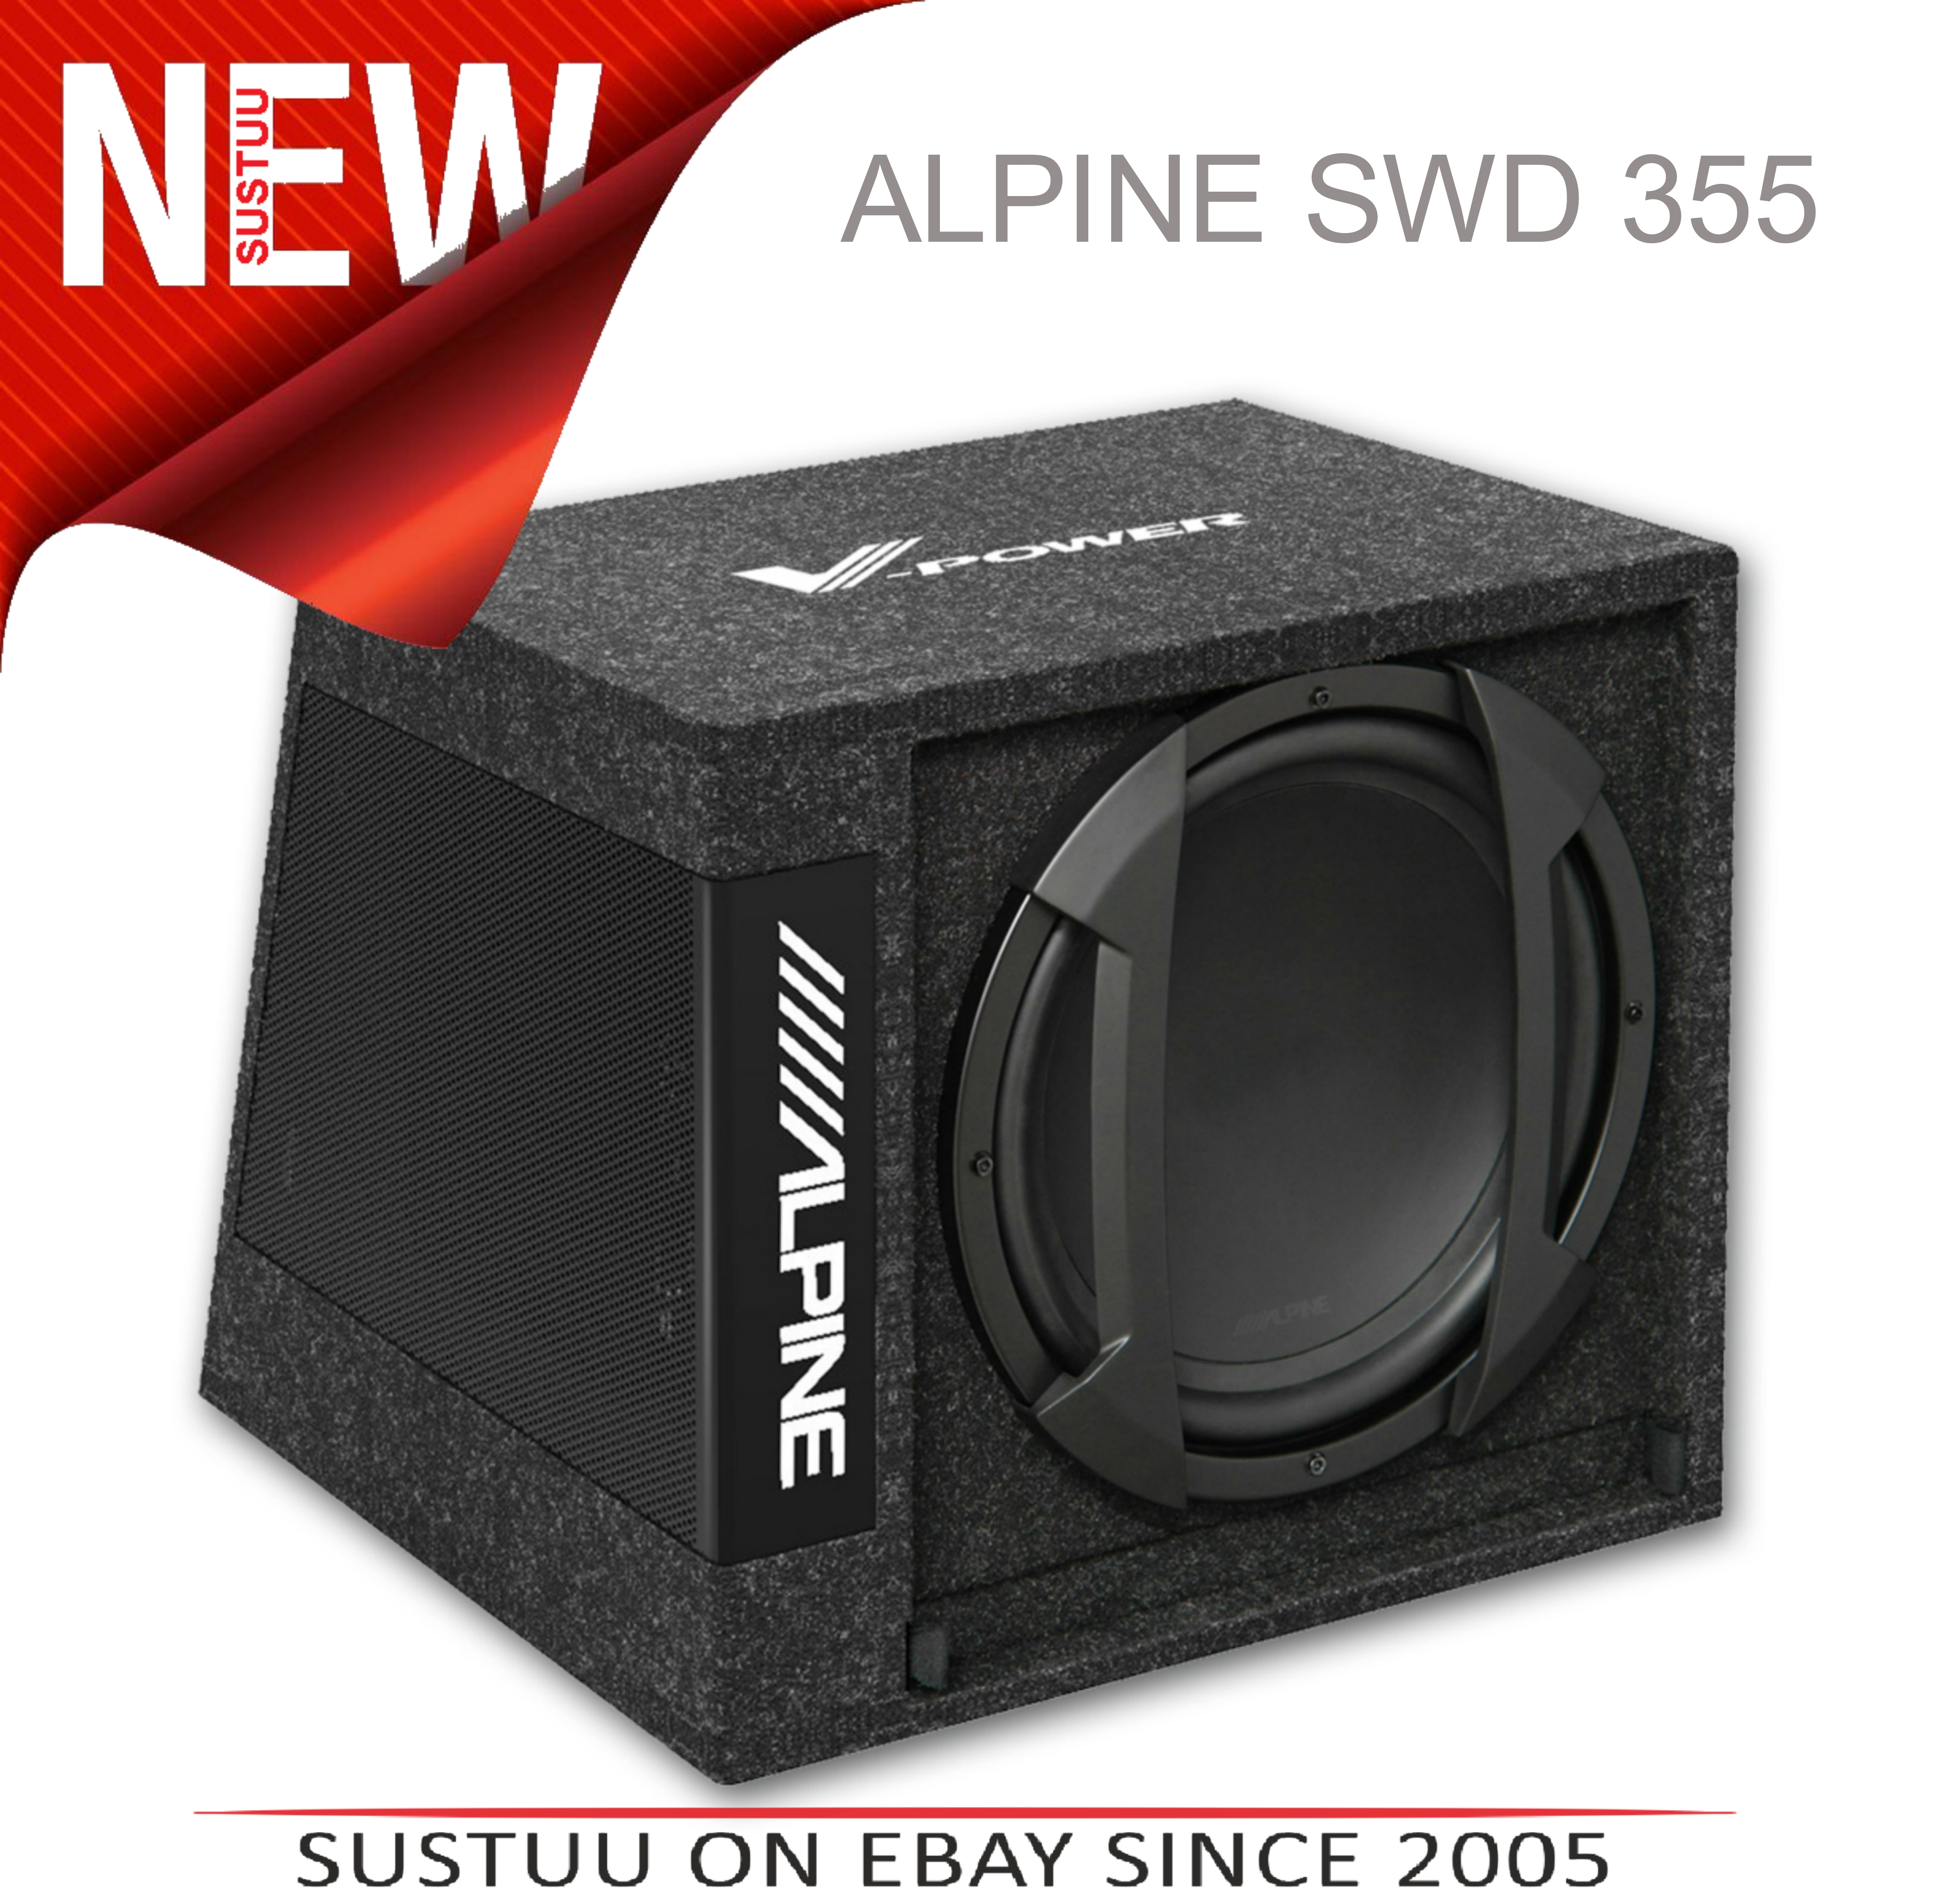 "Alpine SWD 355 Subwoofer Combined With Digital V-POWER Mono Amplifier12"" 650W"